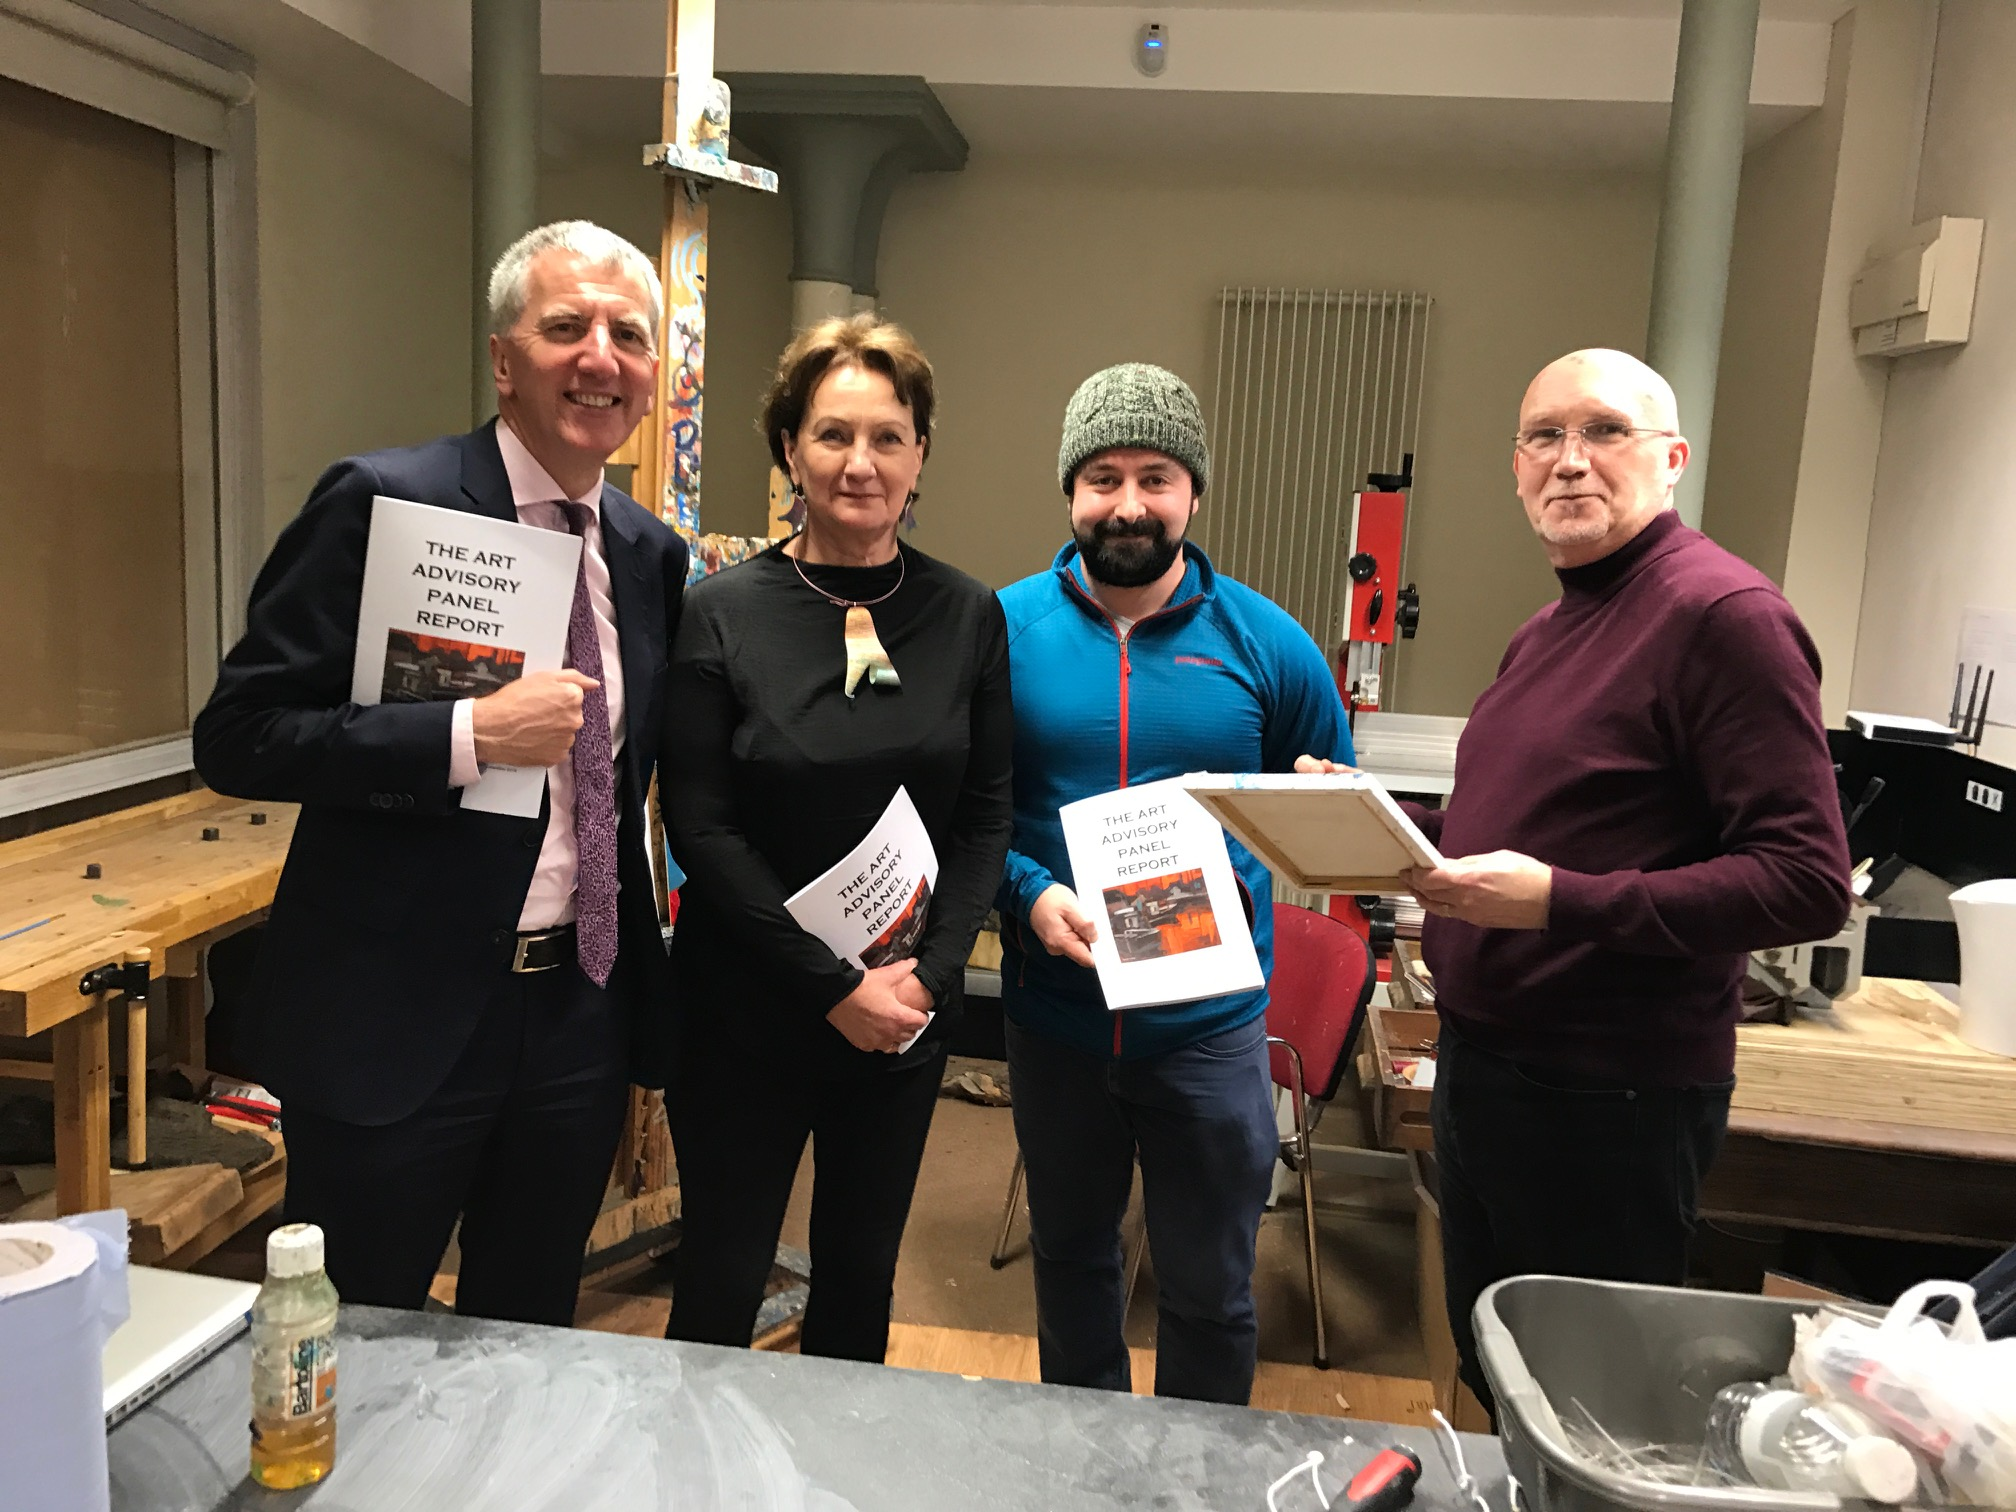 I was thrilled to join Arts Council CEO Roisín McDonough, artist and musician Barry Kerr and the Rev Bill Shaw in the Duncairn Arts Centre (another peace process hero) to deliver on my pledge to open the government arts collection to the public. I have now put aside £40,000 per annum for the next three years to buy new artworks by local artists for the collection and an additional £40,000 to buy works to fill the void left by the decision to cease purchasing artworks from 2004 until I came into the Finance Minister's post.